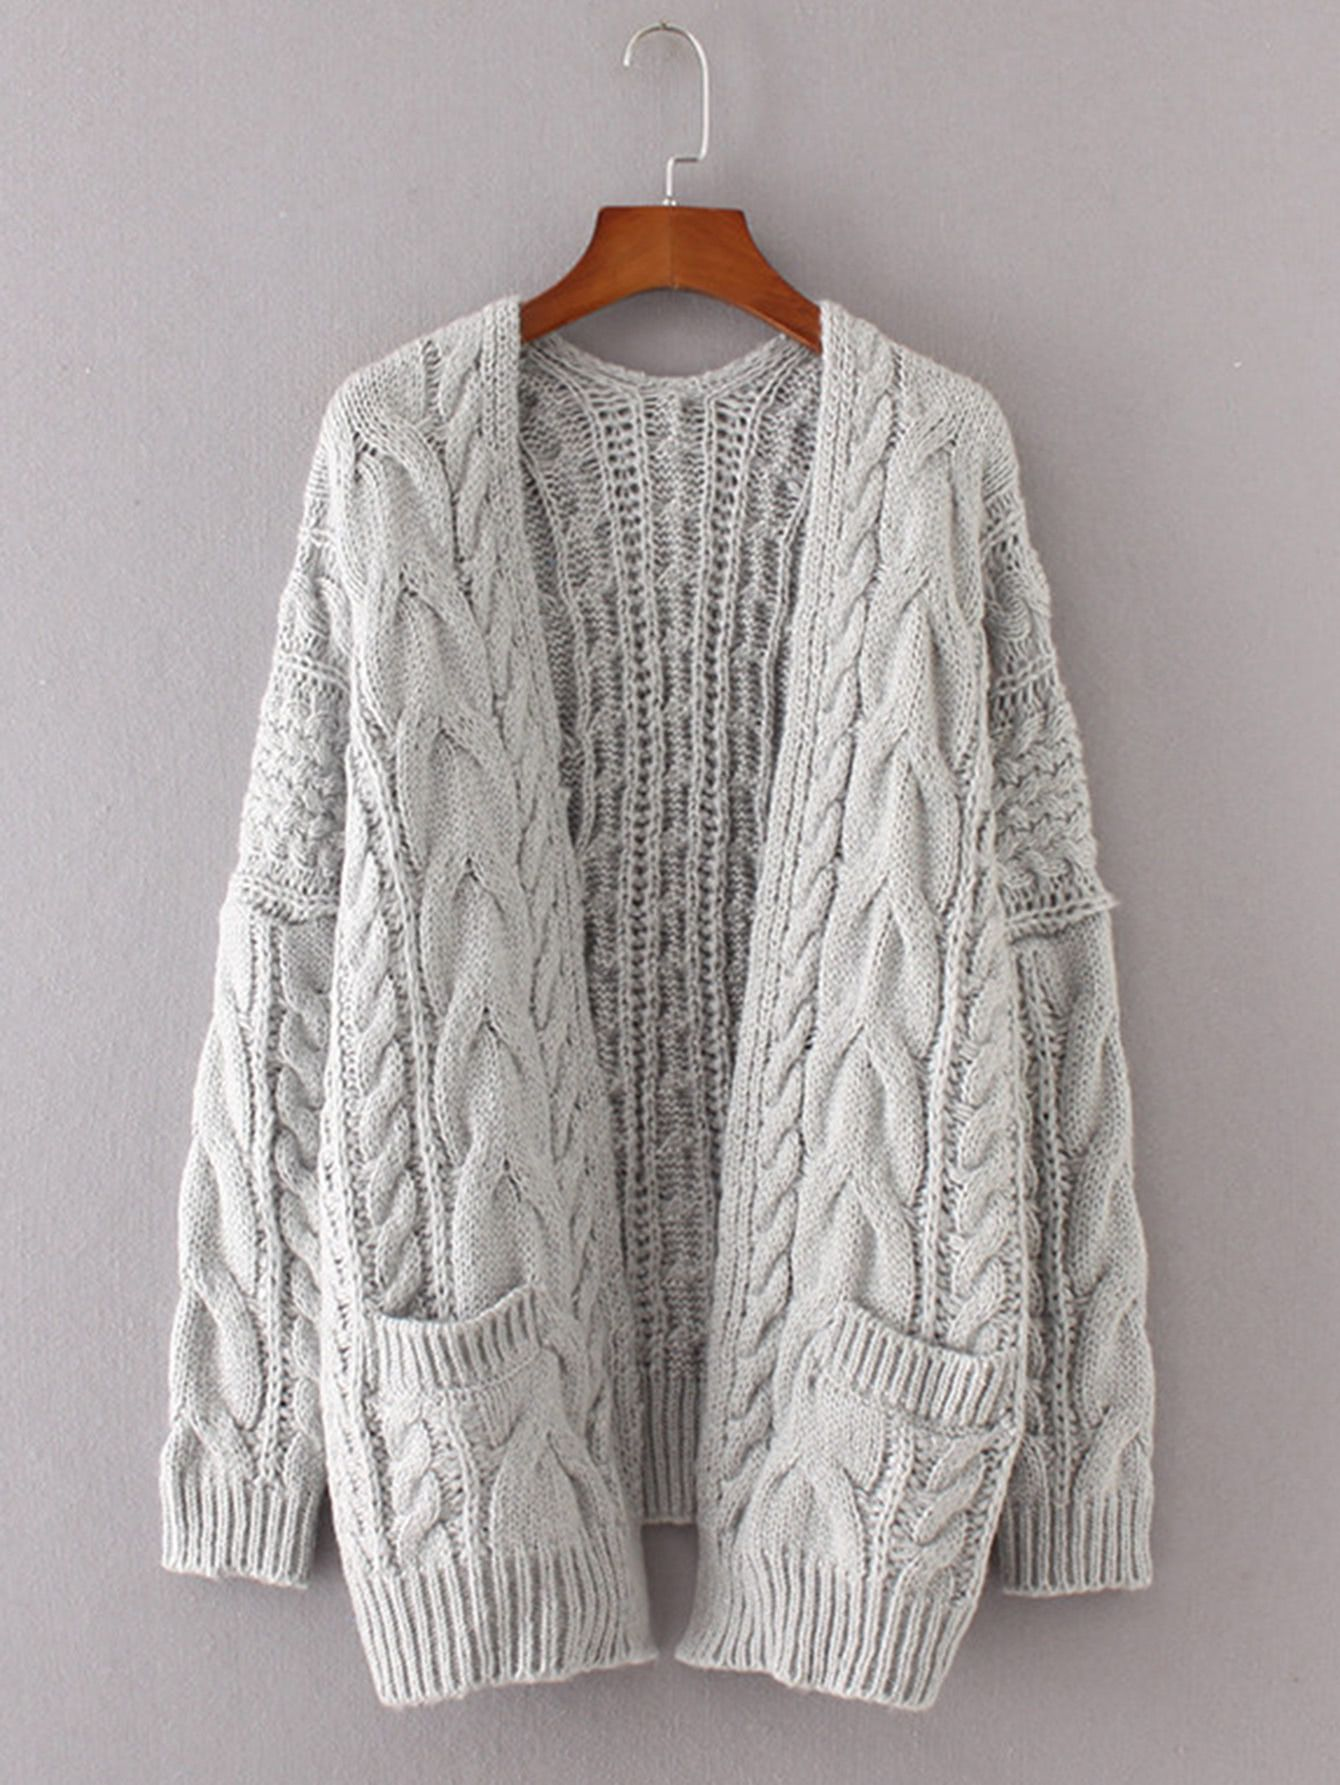 Drop Shoulder Cable Knit Cardigan | Cable knit cardigan, Cable ...